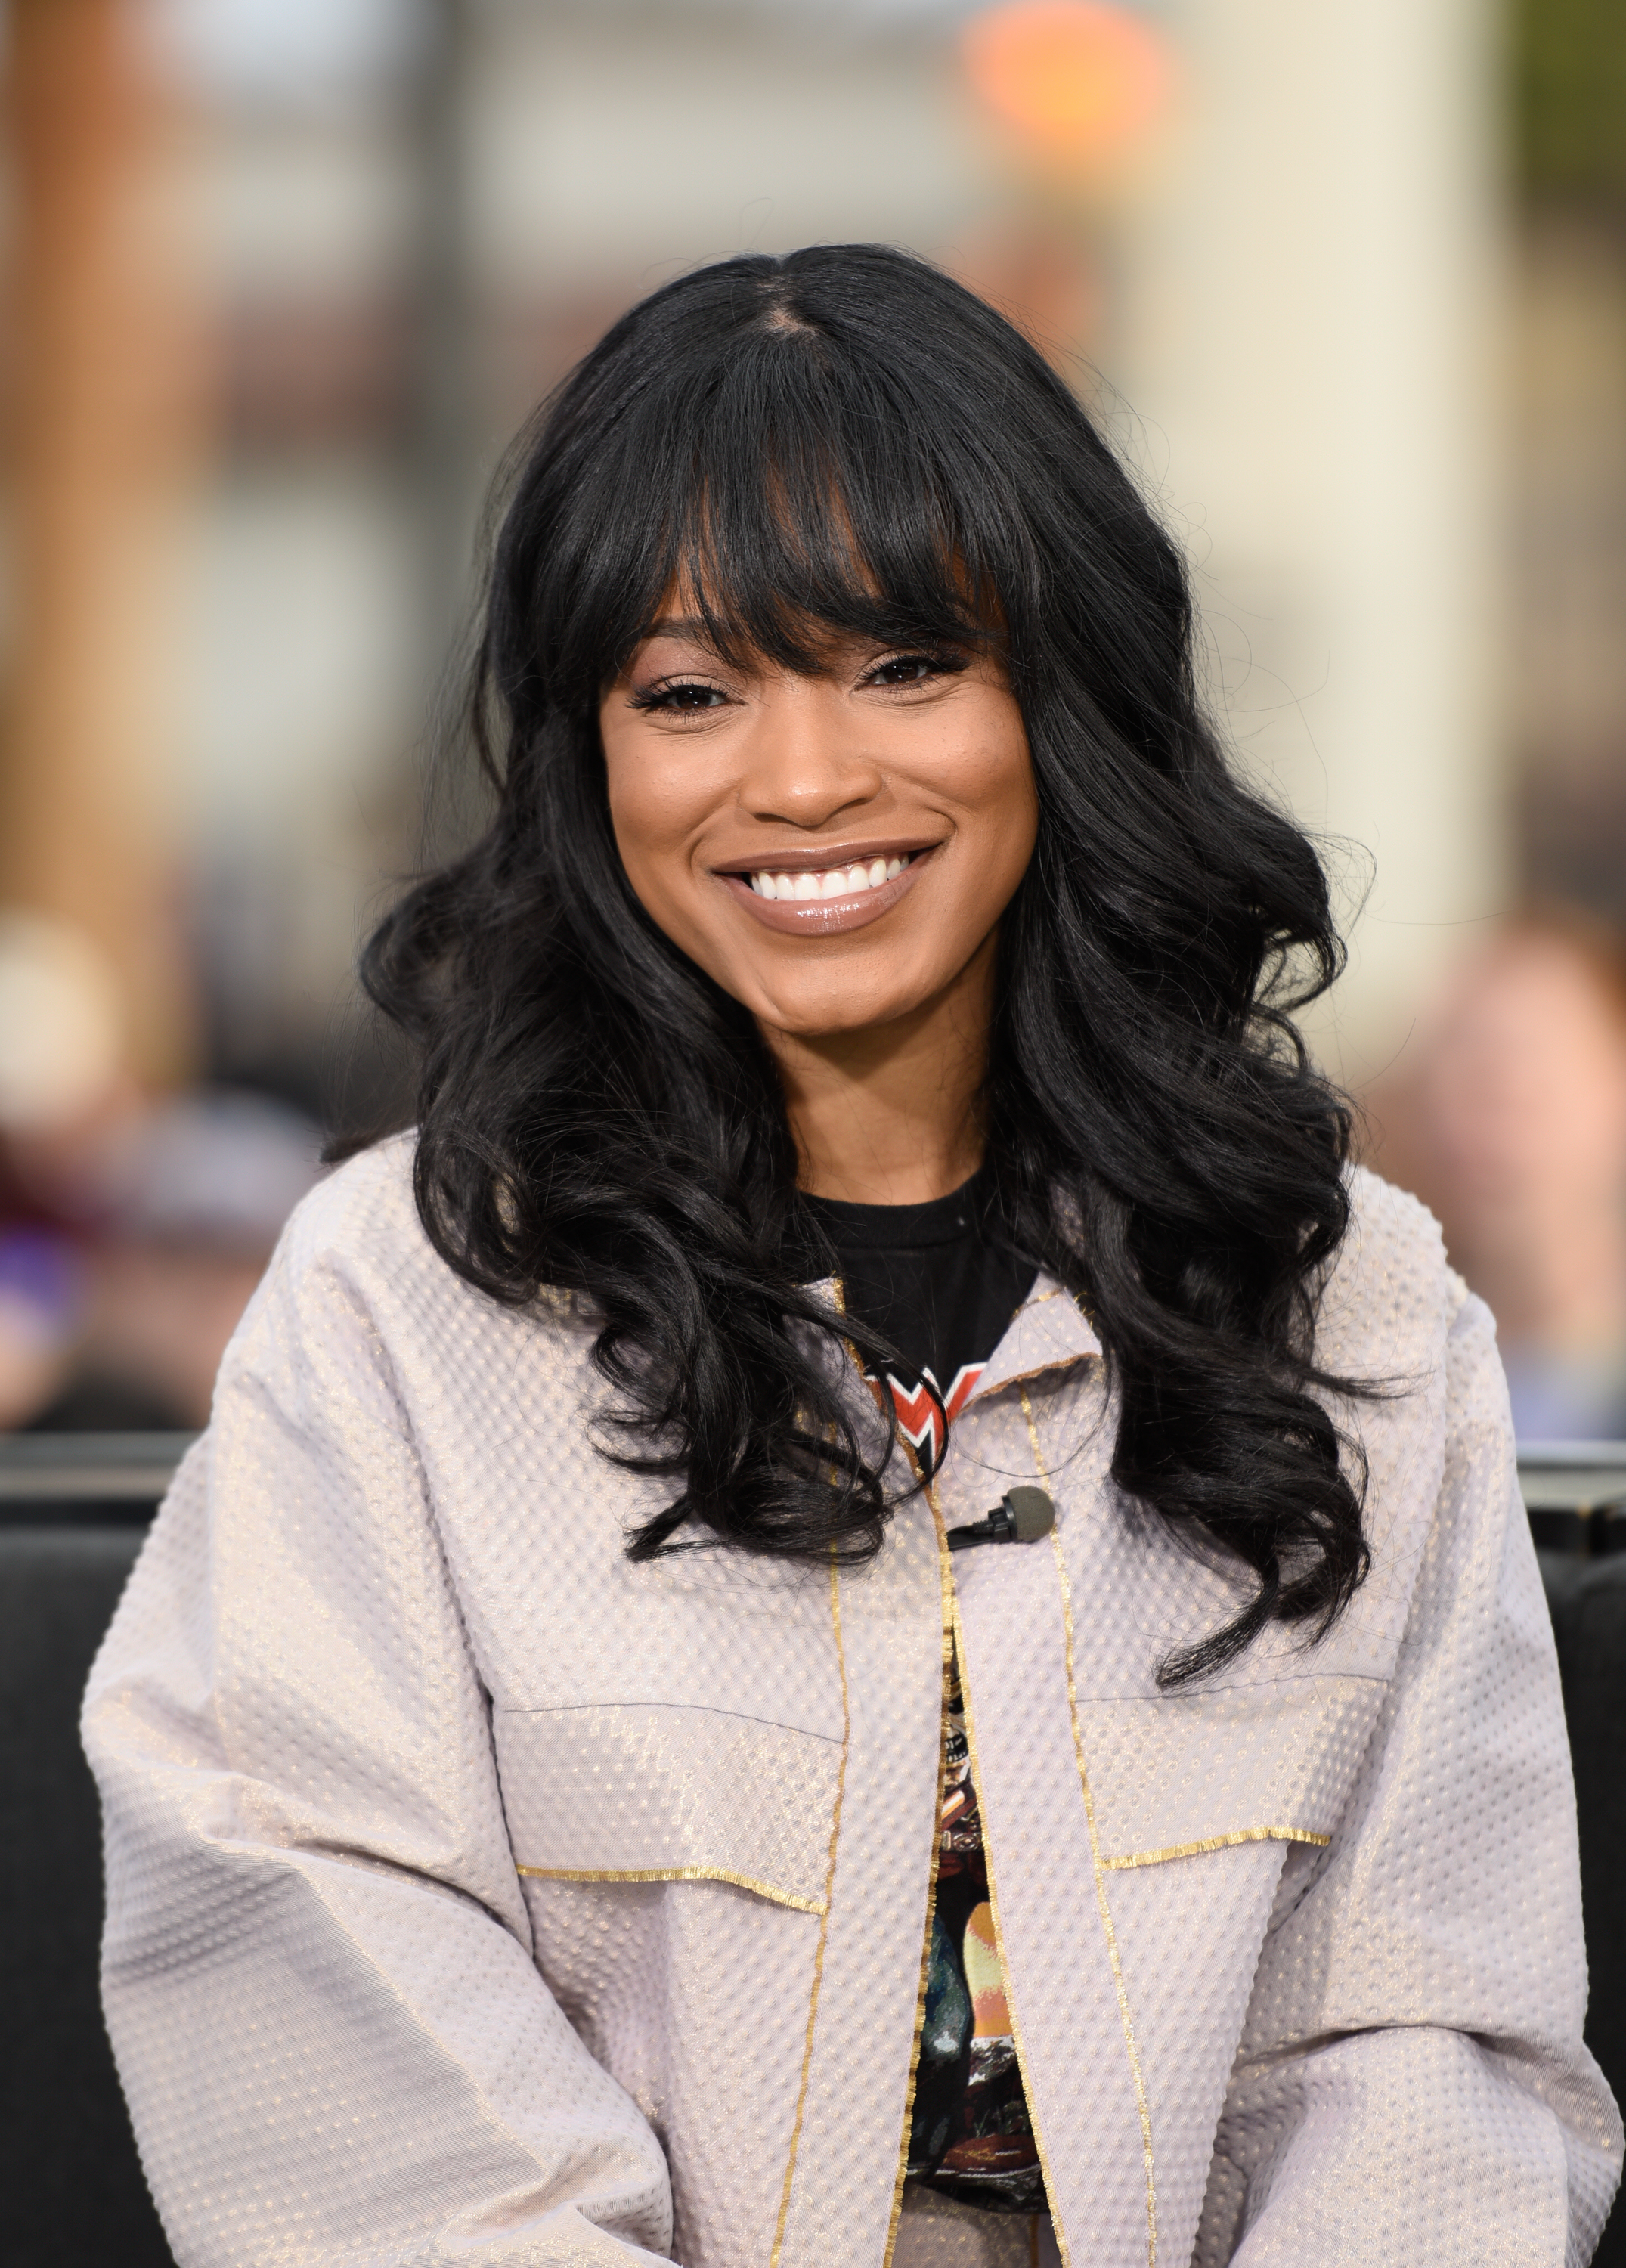 Report: Keke Palmer Being Considered For Permanent Position on Good Morning America